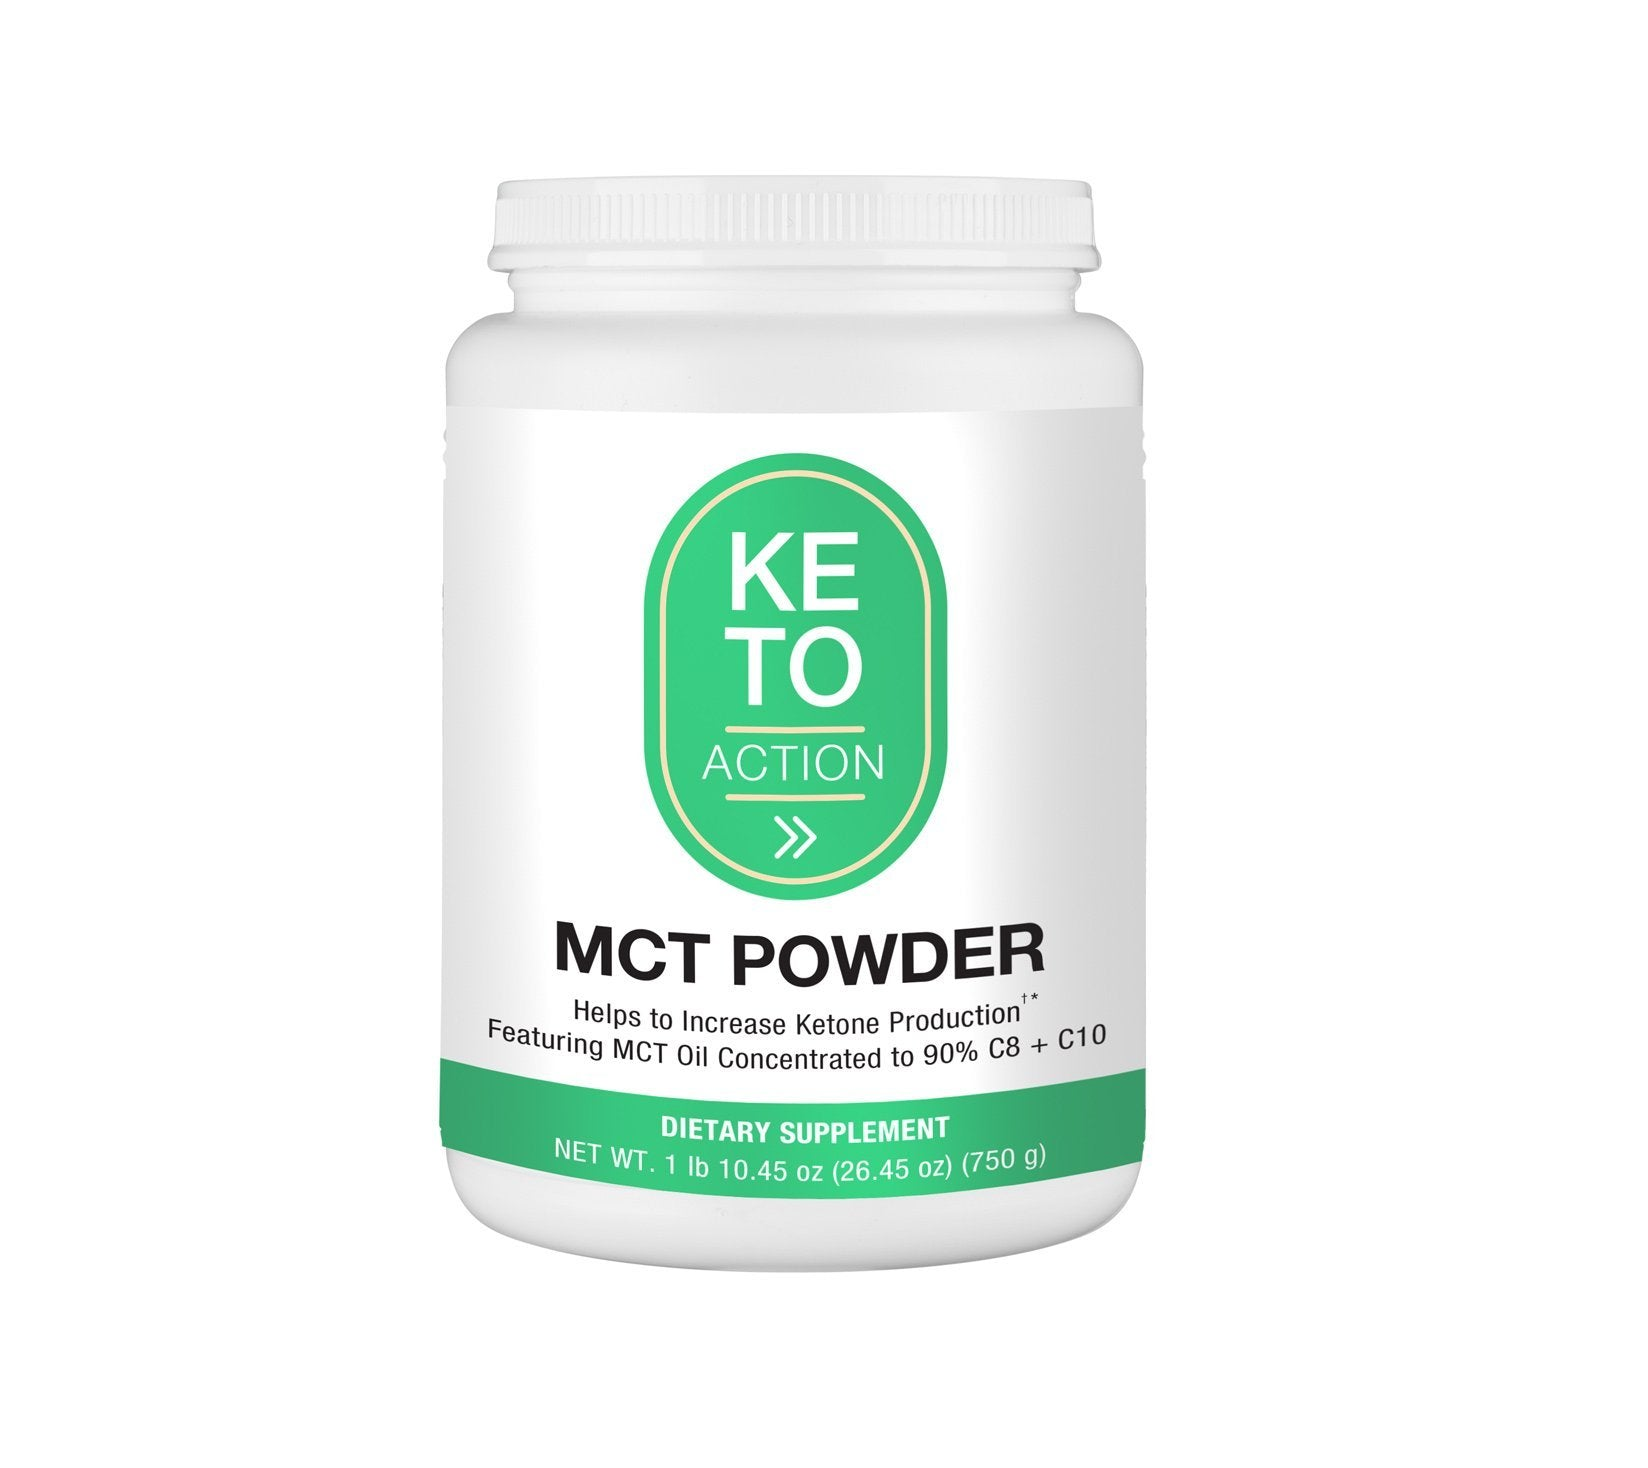 KETO Action MCT Powder